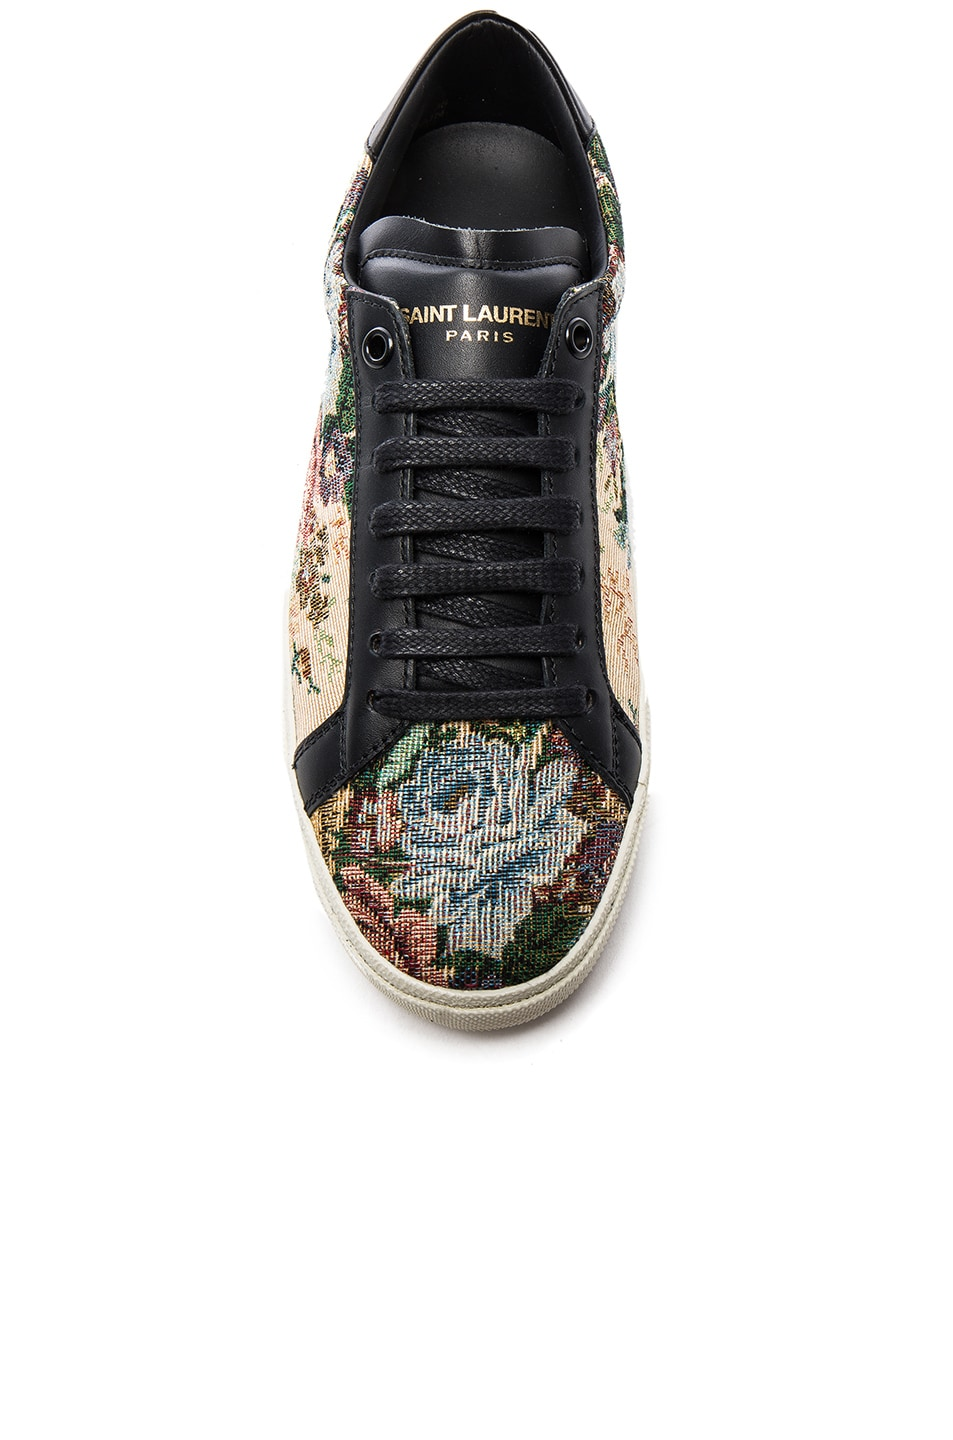 Image 4 of Saint Laurent Court Classic Floral Tapestry Sneakers in Black & Multi